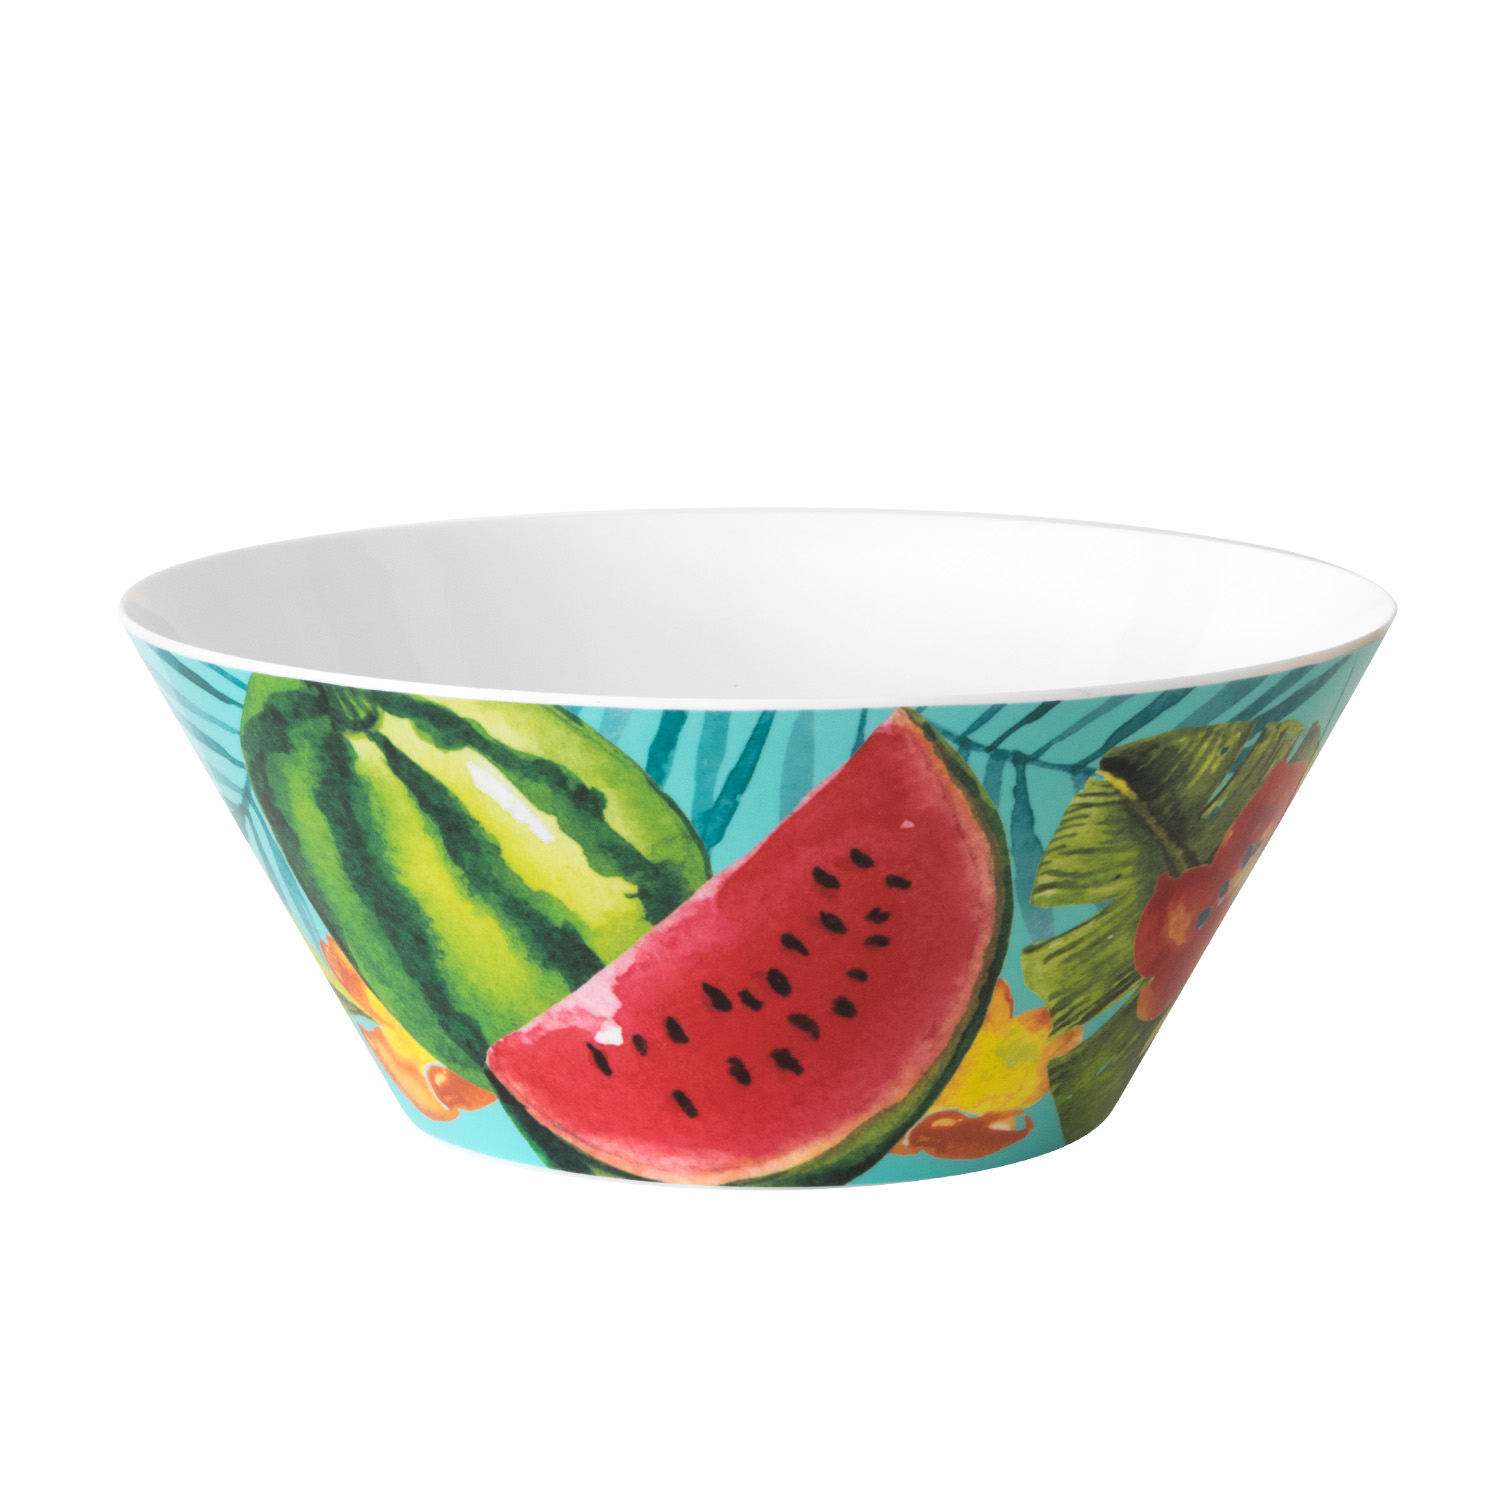 MAINSTAYS - WATERMELON - SALAD SERVING SET